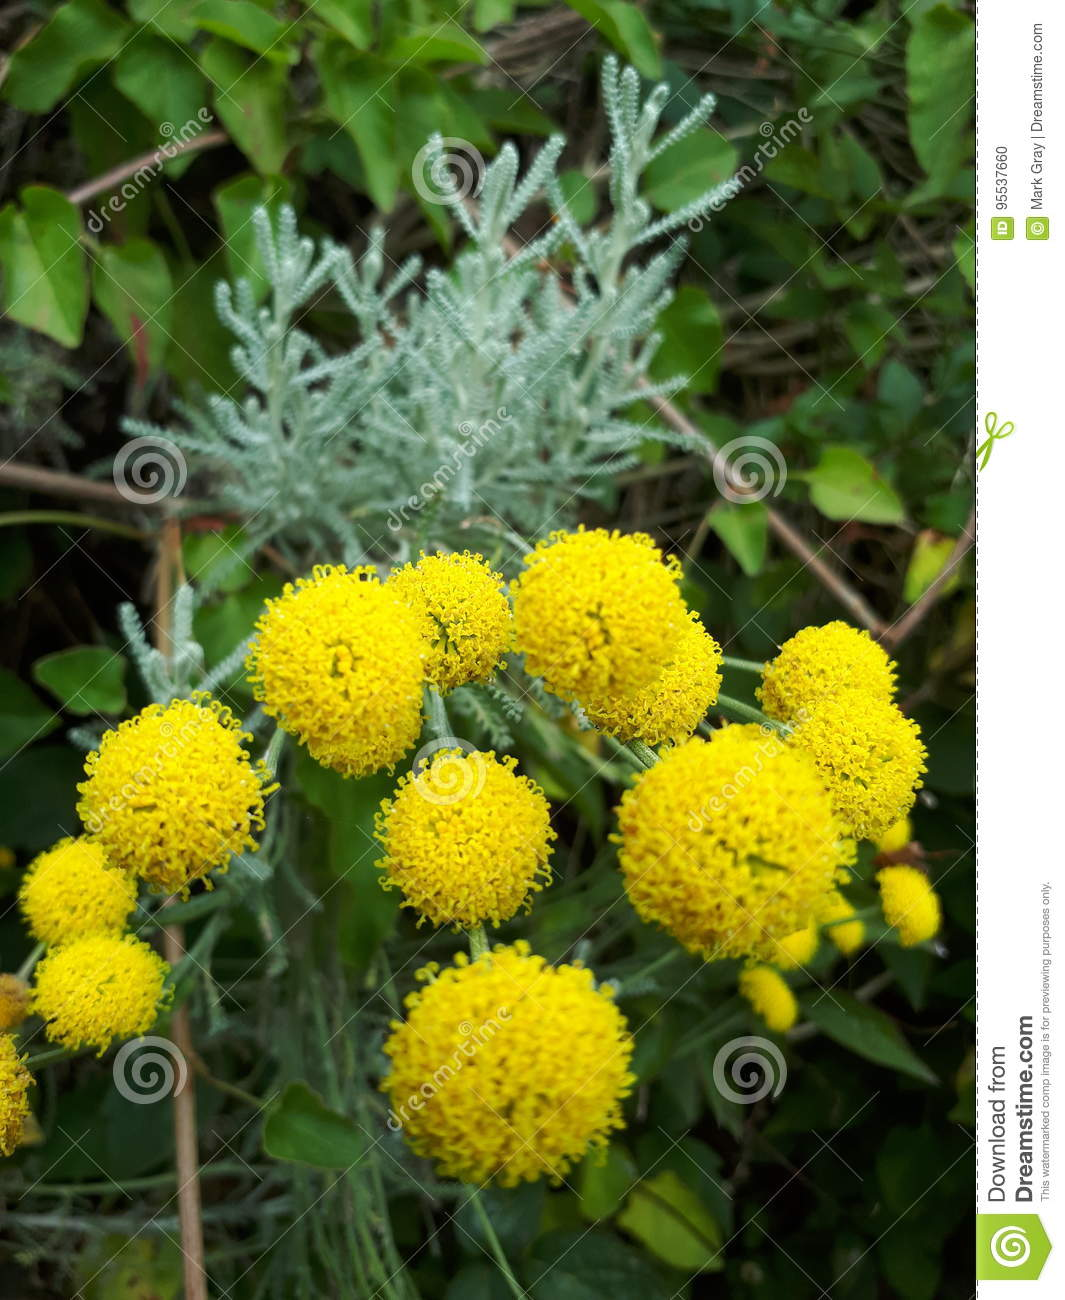 Yellow pom poms stock photo image of flowers yellow 95537660 download yellow pom poms stock photo image of flowers yellow 95537660 mightylinksfo